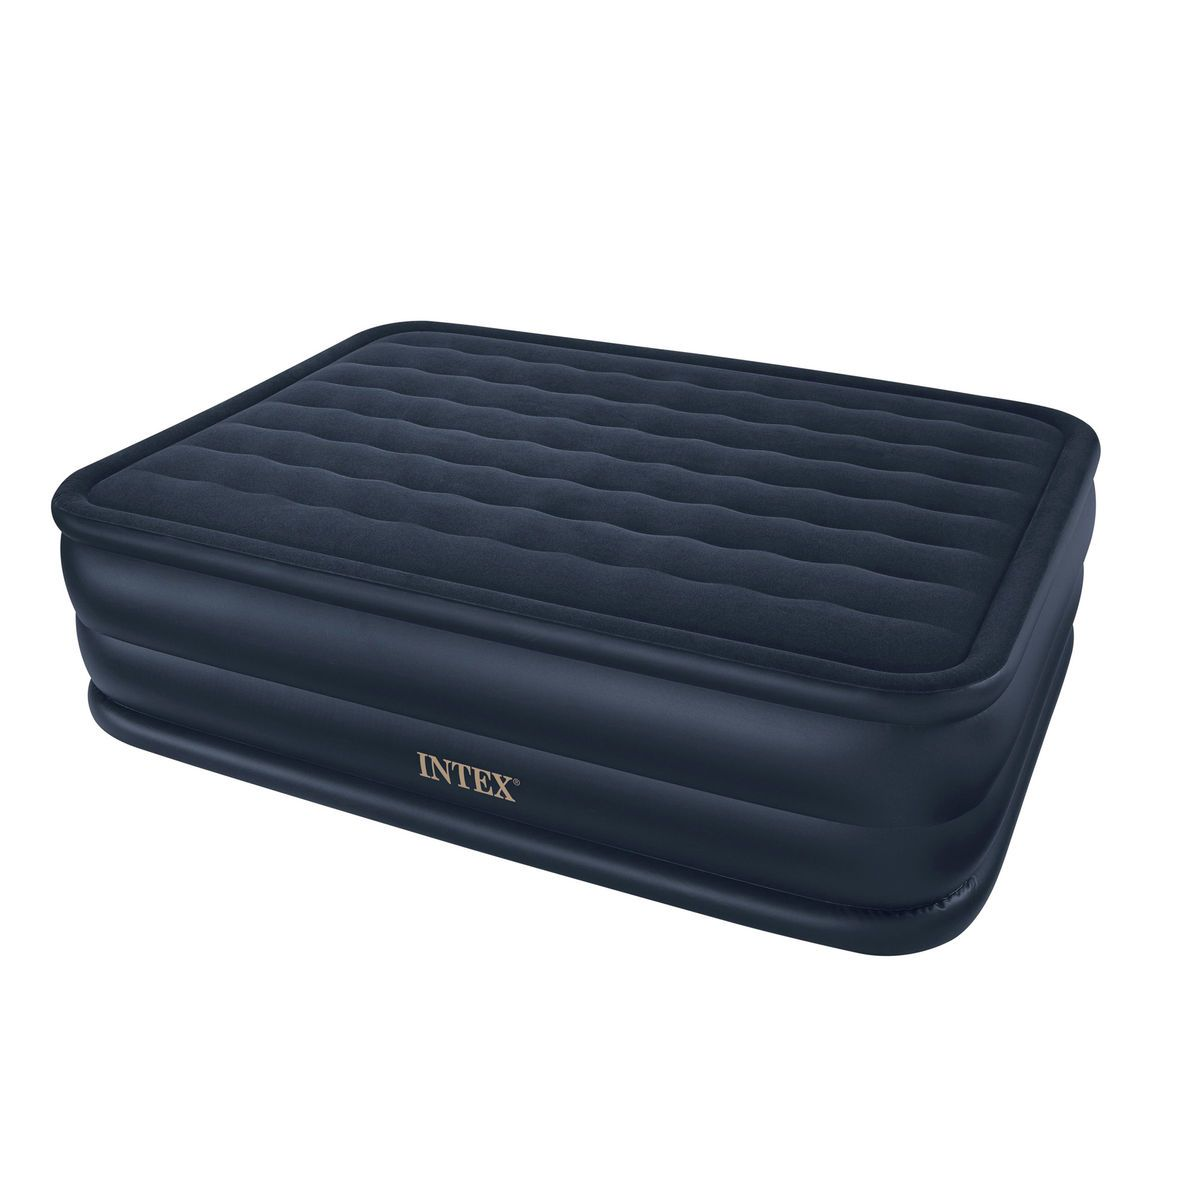 intex queen downy raised air bed with integrated pump 402186